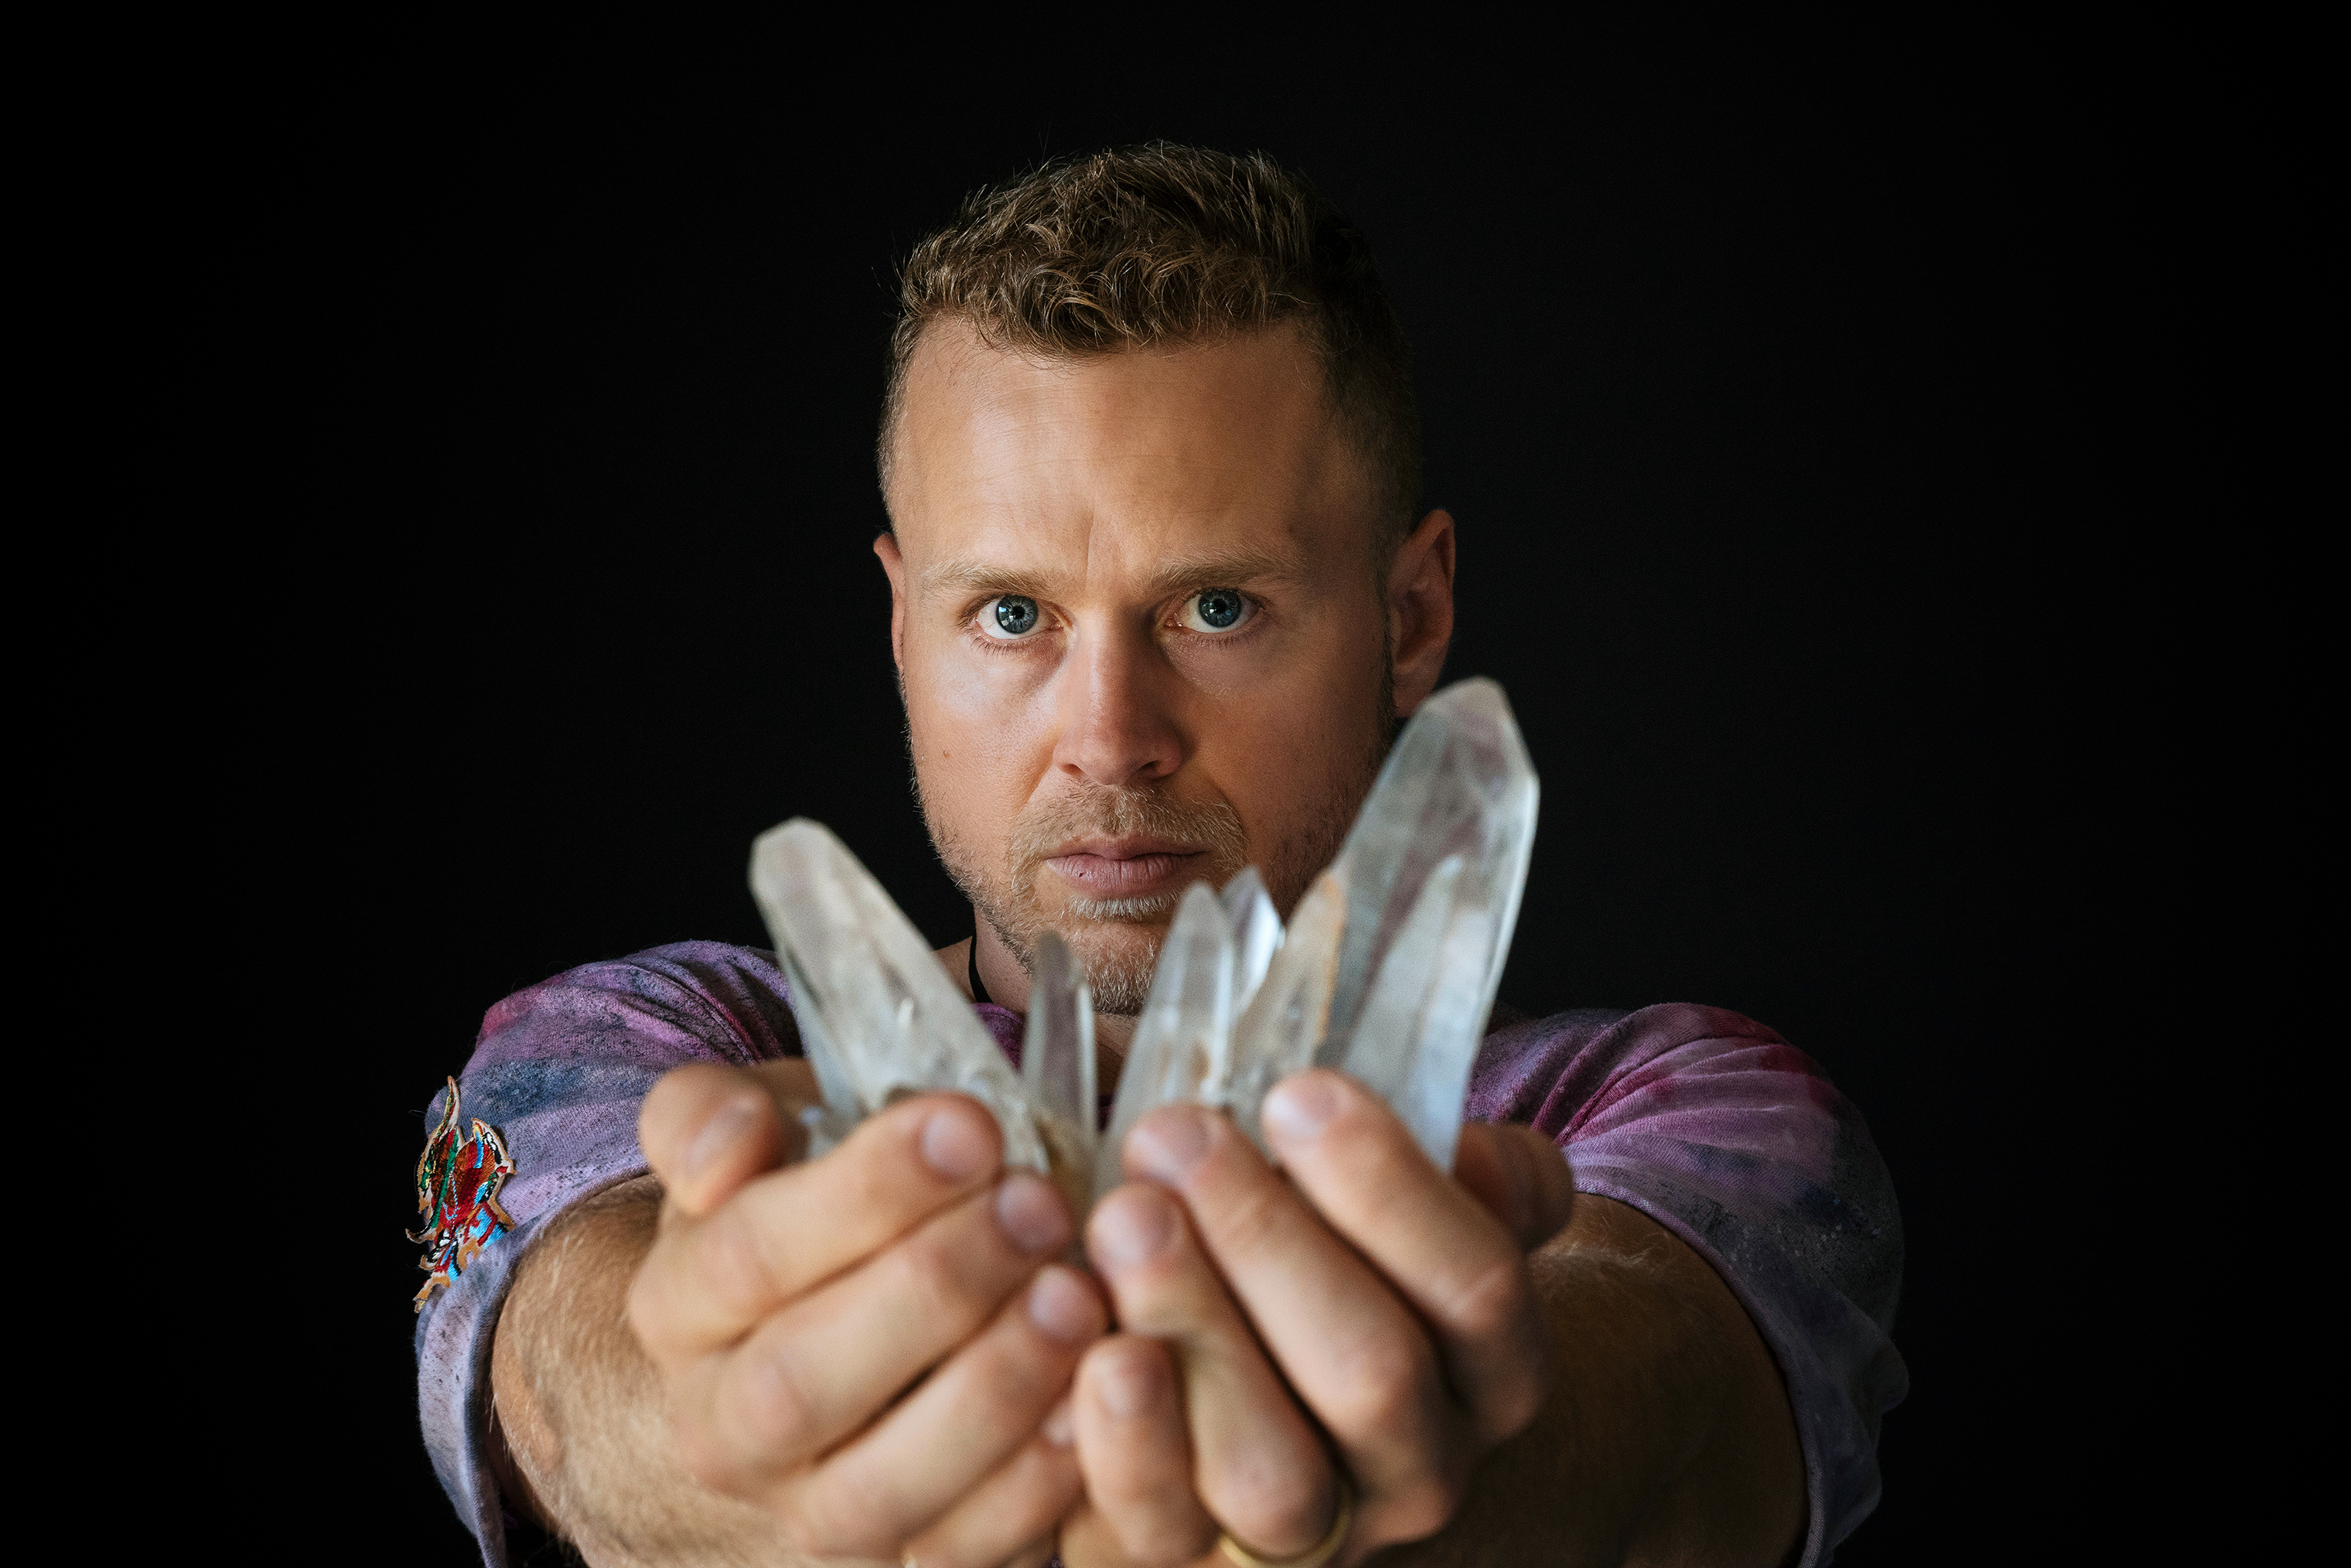 Spencer Pratt holds a lemurian quartz crystal from his collection at his home in the Pacific Palisades neighborhood of Los Angeles, California on Friday, June 22, 2018.